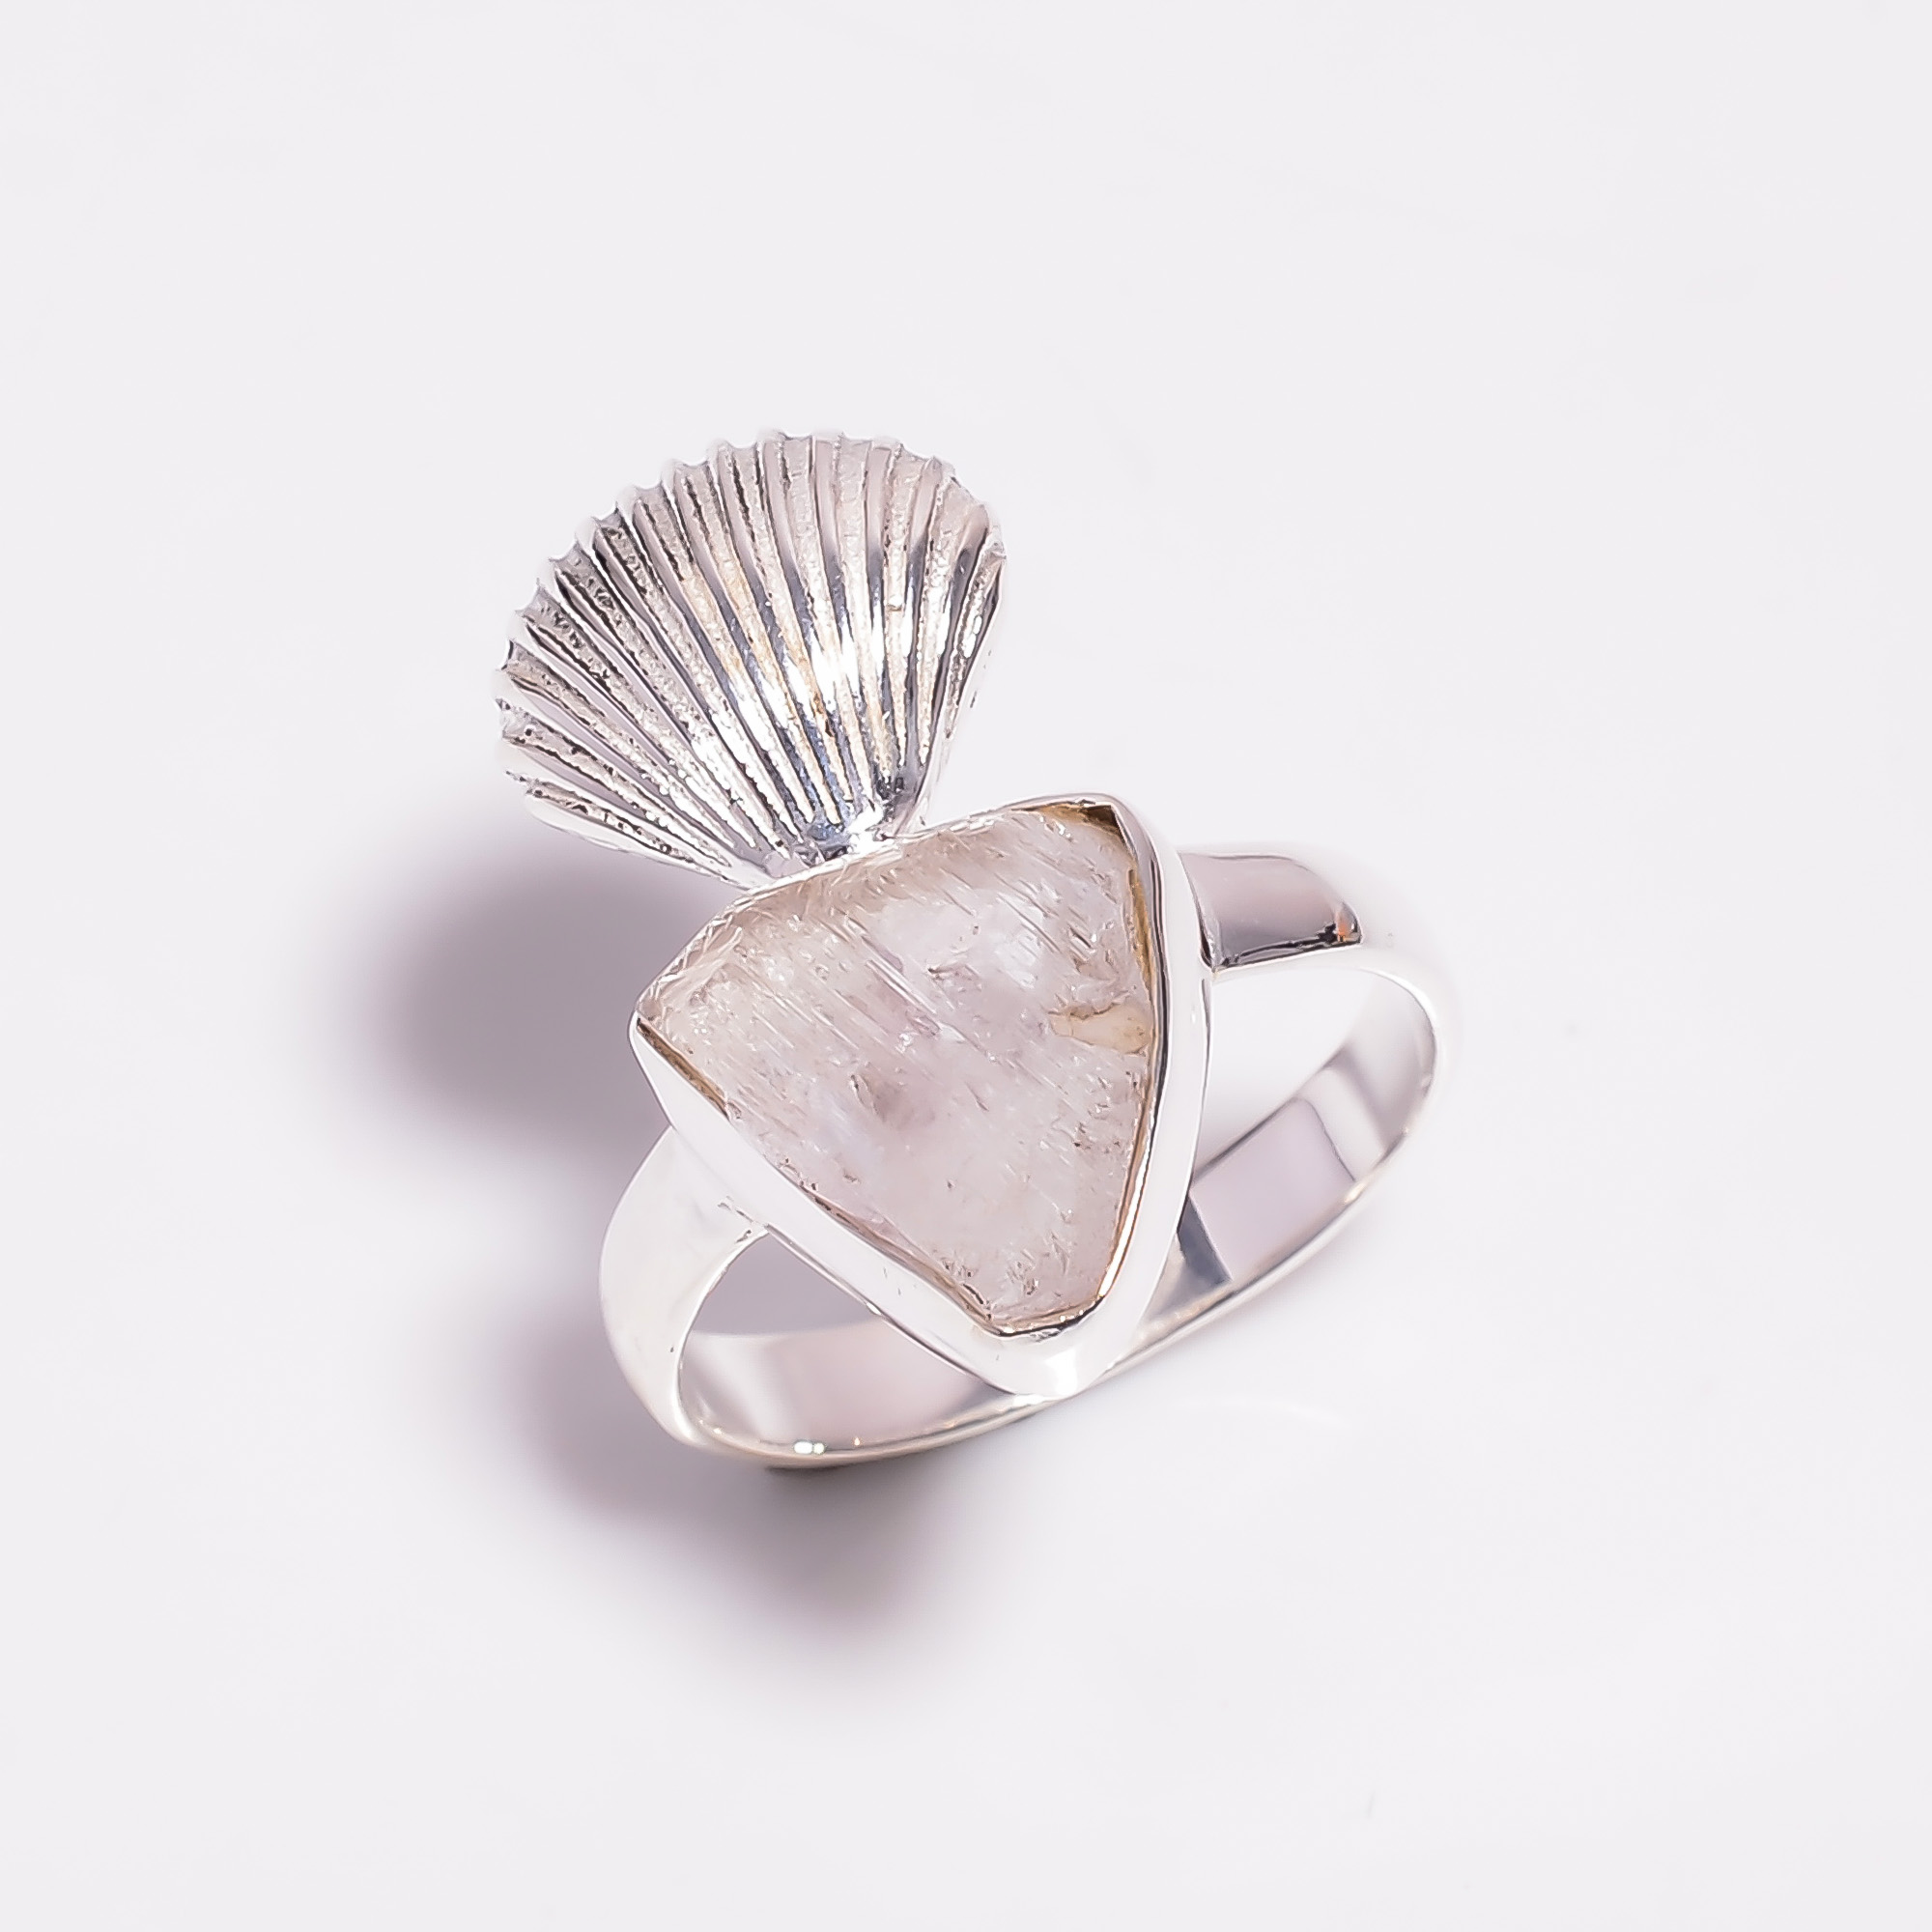 Raw Kunzite Gemstone 925 Sterling Silver Ring Size US 6.75